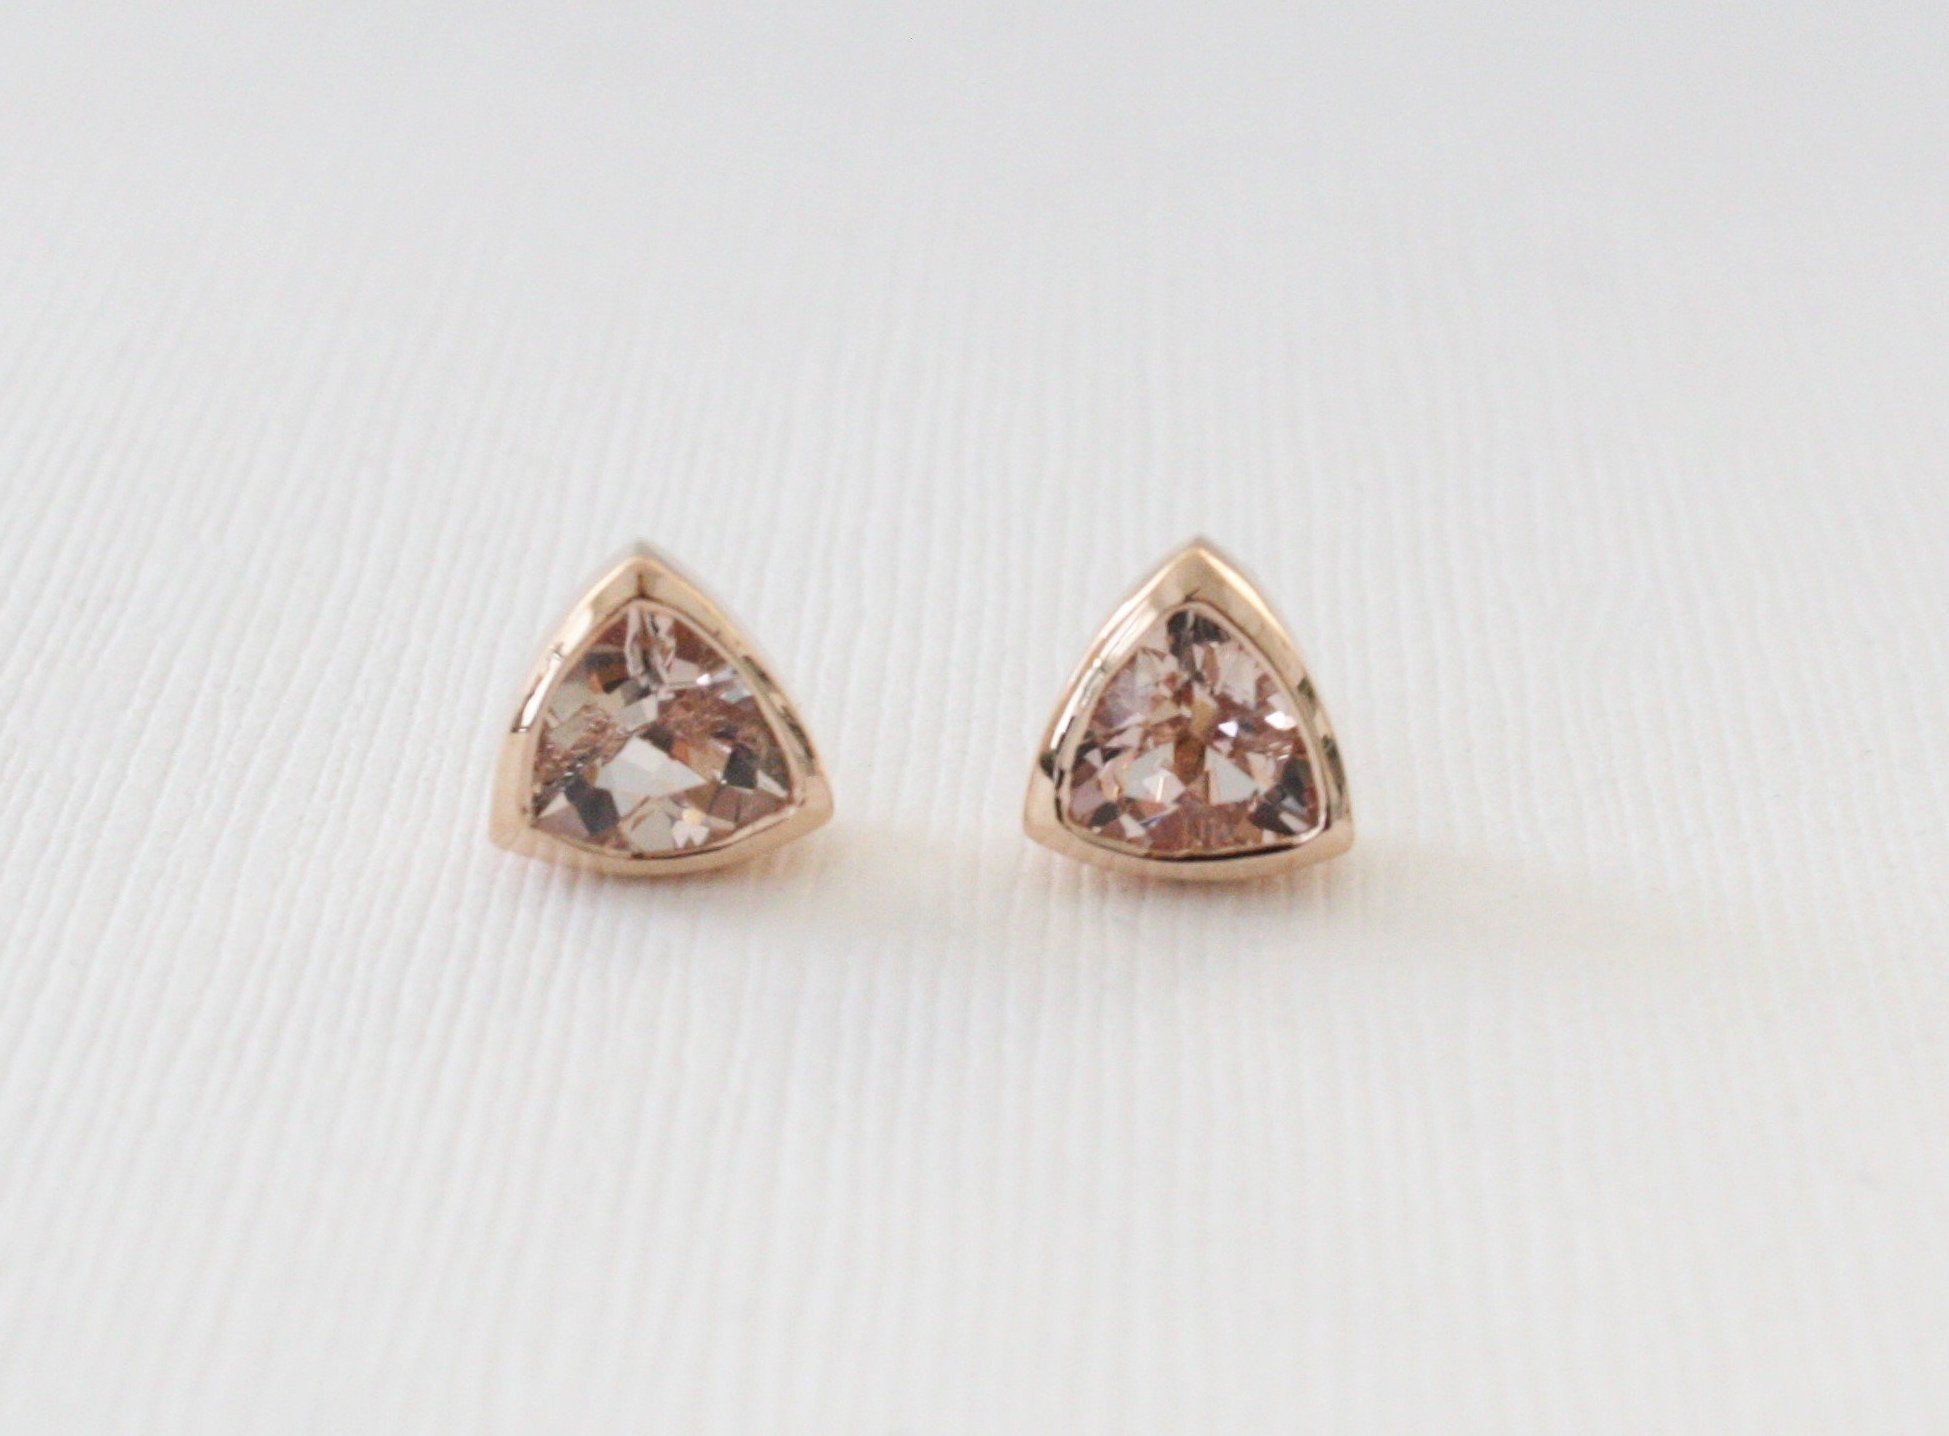 gold leah uk solid clarke stud morganite rose earrings astley